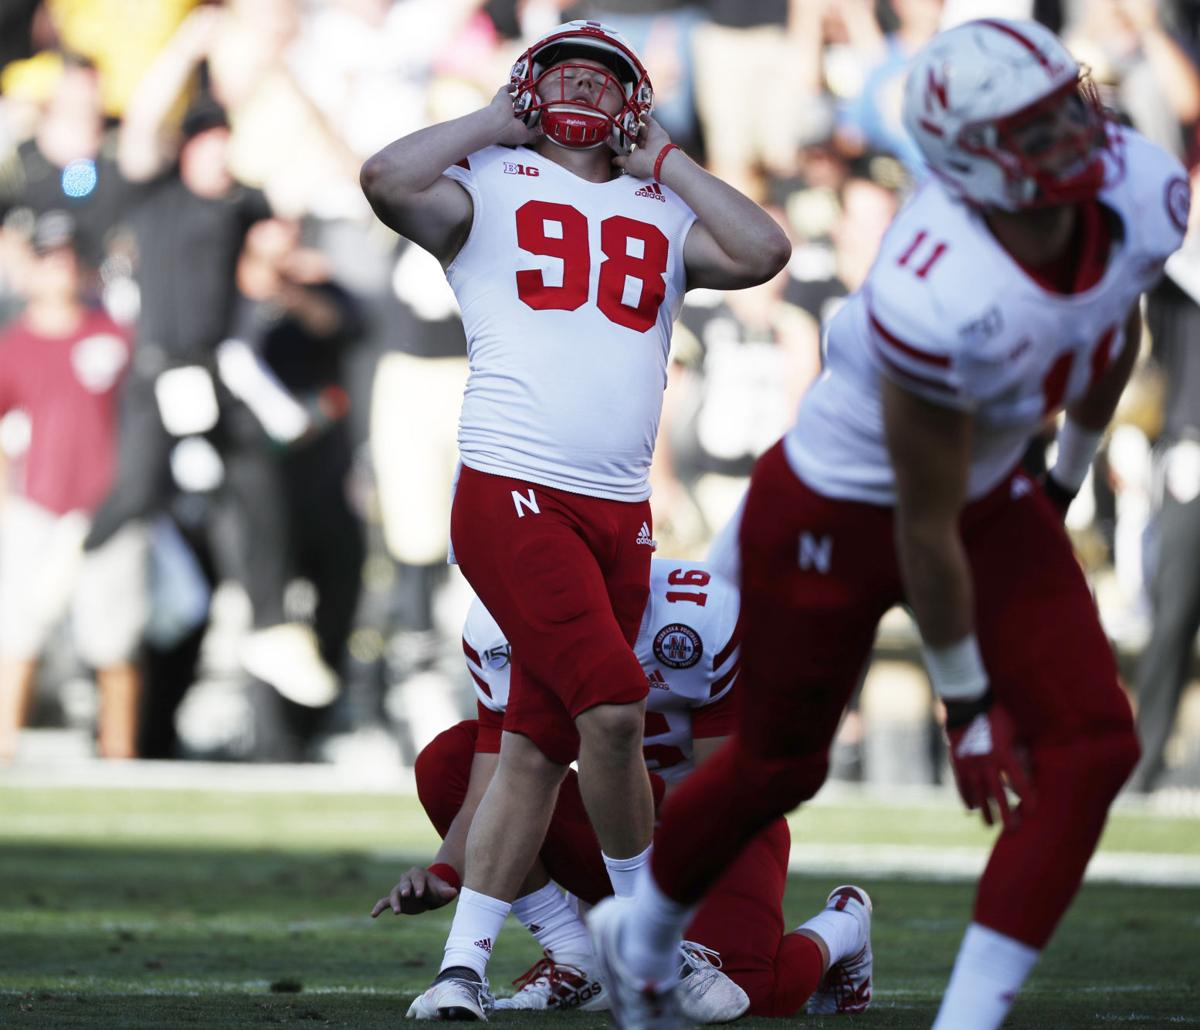 AP, Nebraska vs. Colorado, 9.7